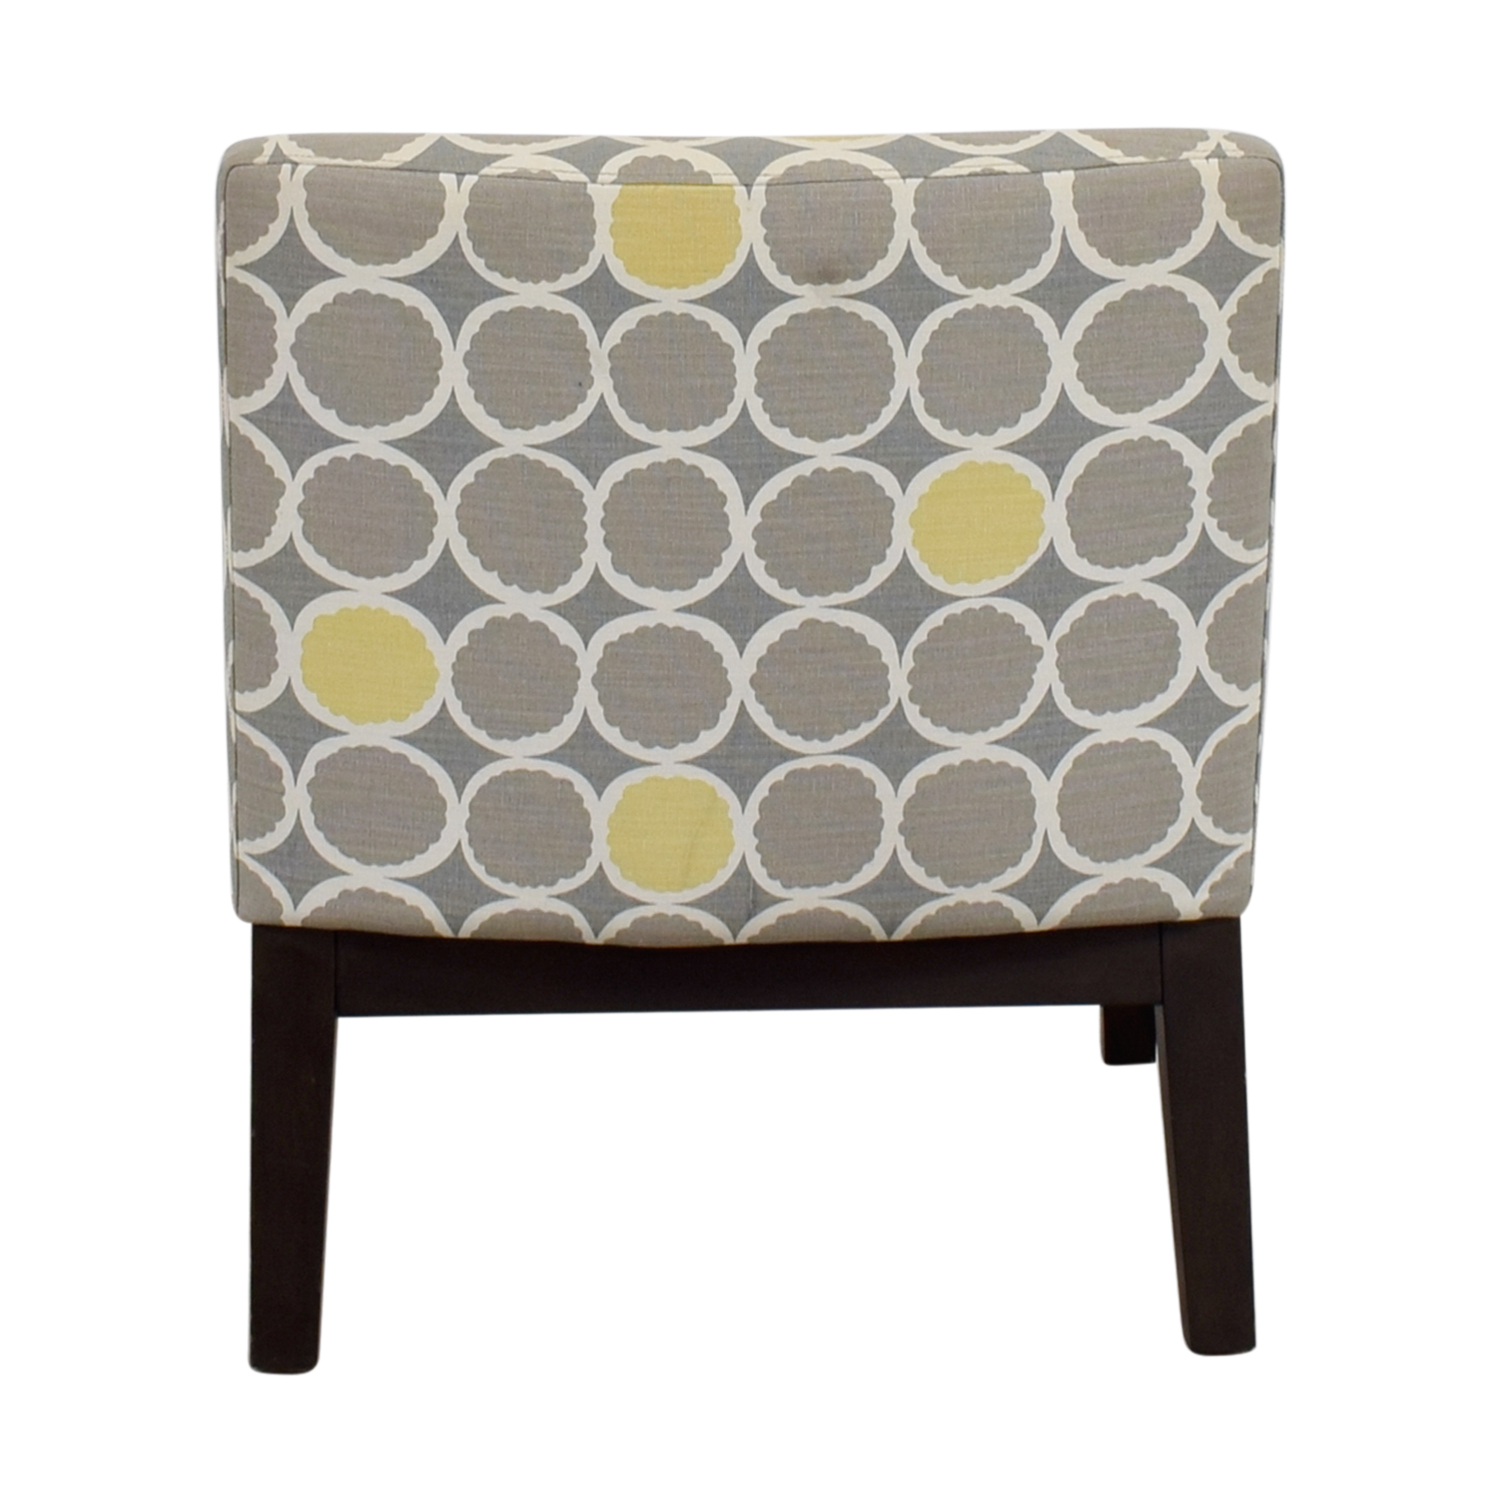 72 Off West Elm West Elm Grey Yellow And White Accent Chair Chairs